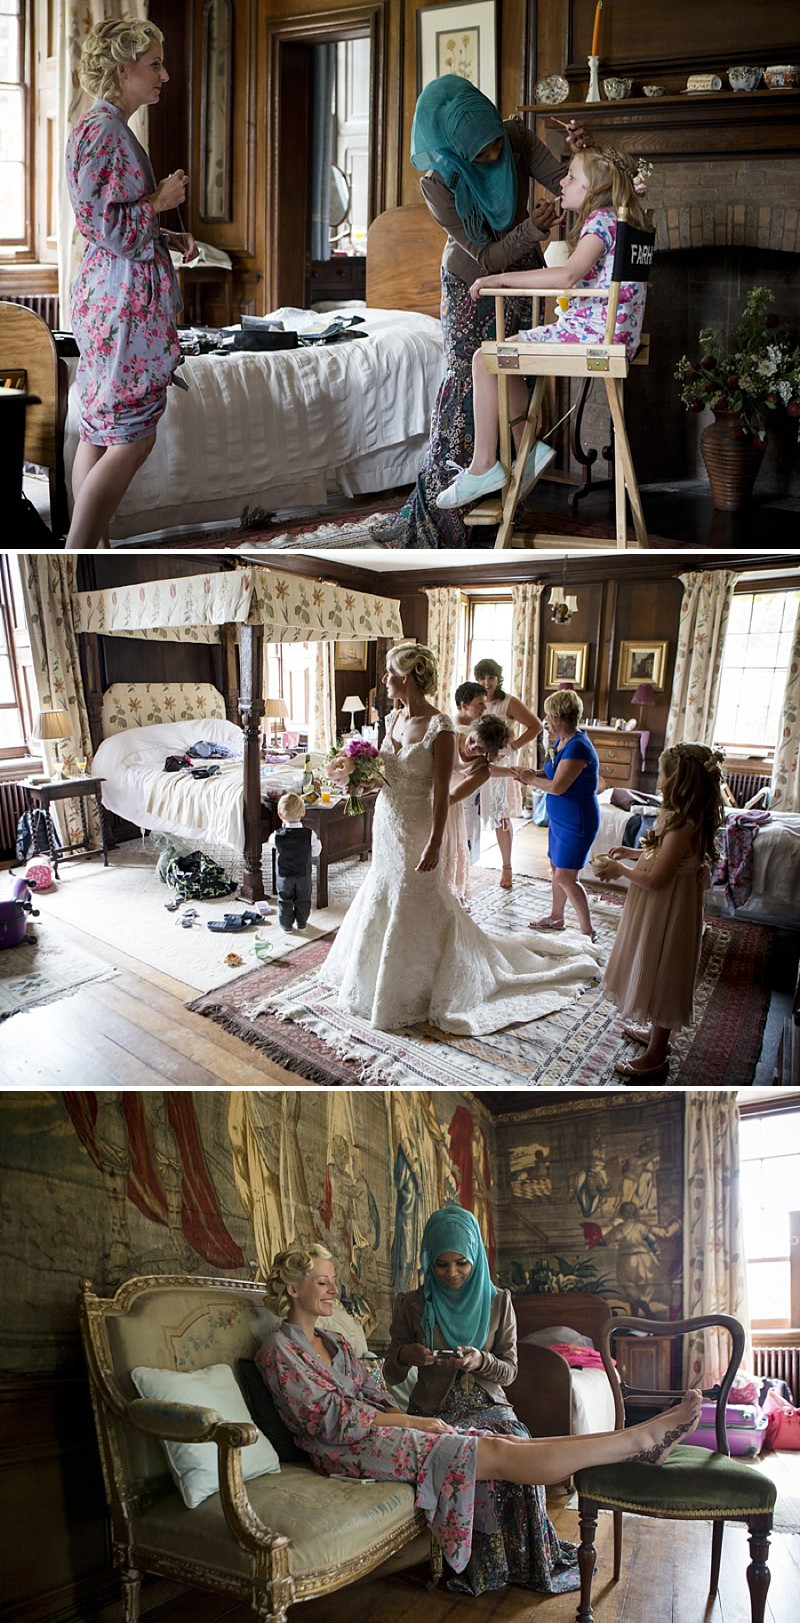 A Vintage Inspired Wedding At Penpont House Brecon With Bride In Lace Fishtail Gown By Mori Lee And Groom In Navy Suit From Suit Supply With Tweed Waistcoat And Images From Martin Ellard At My Big Day Photos_0002